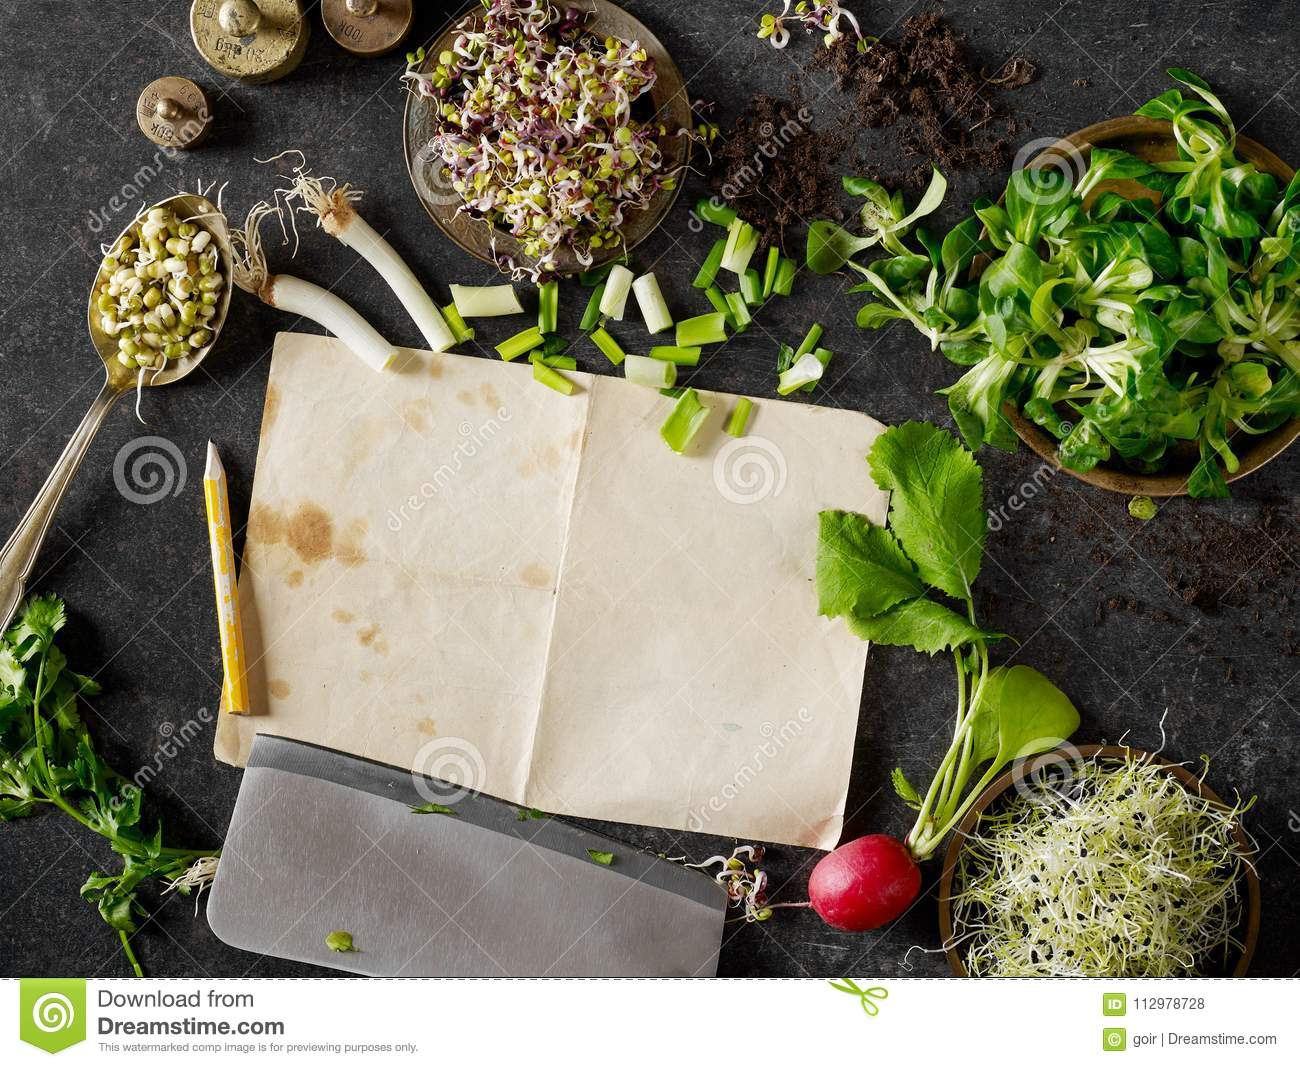 Recipe and greens